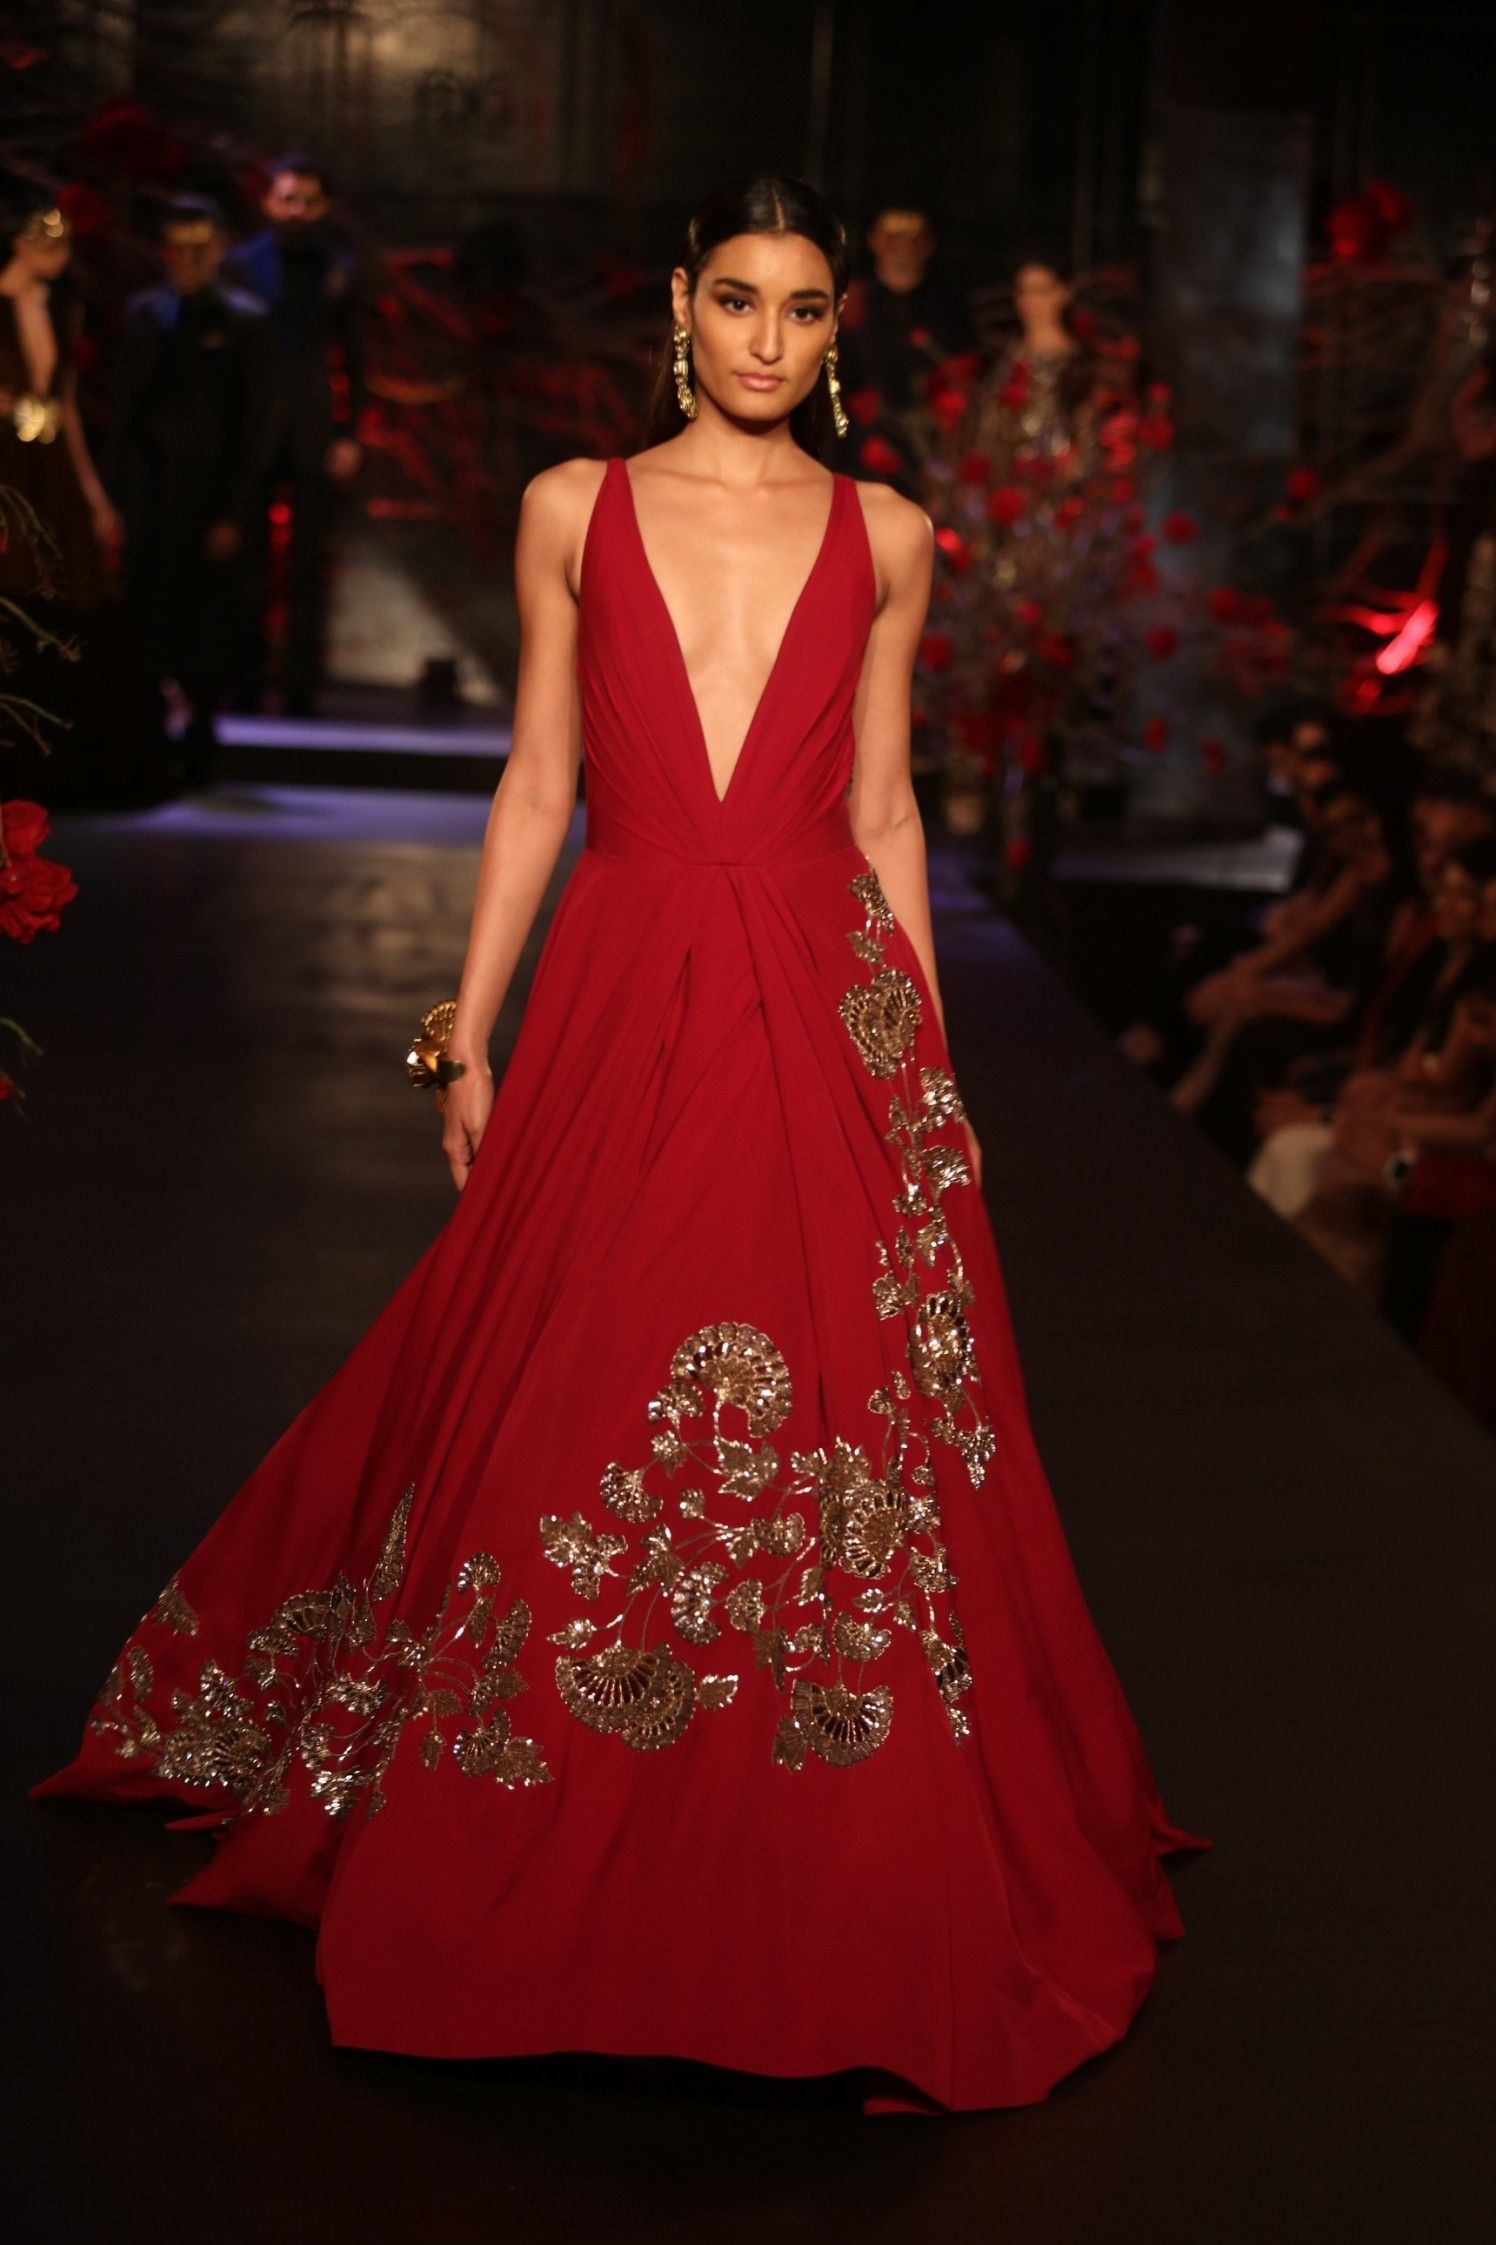 Indo western wedding dress for women  MANISH MALHOTRA AICW  GLAMOROUS  Pinterest  Manish